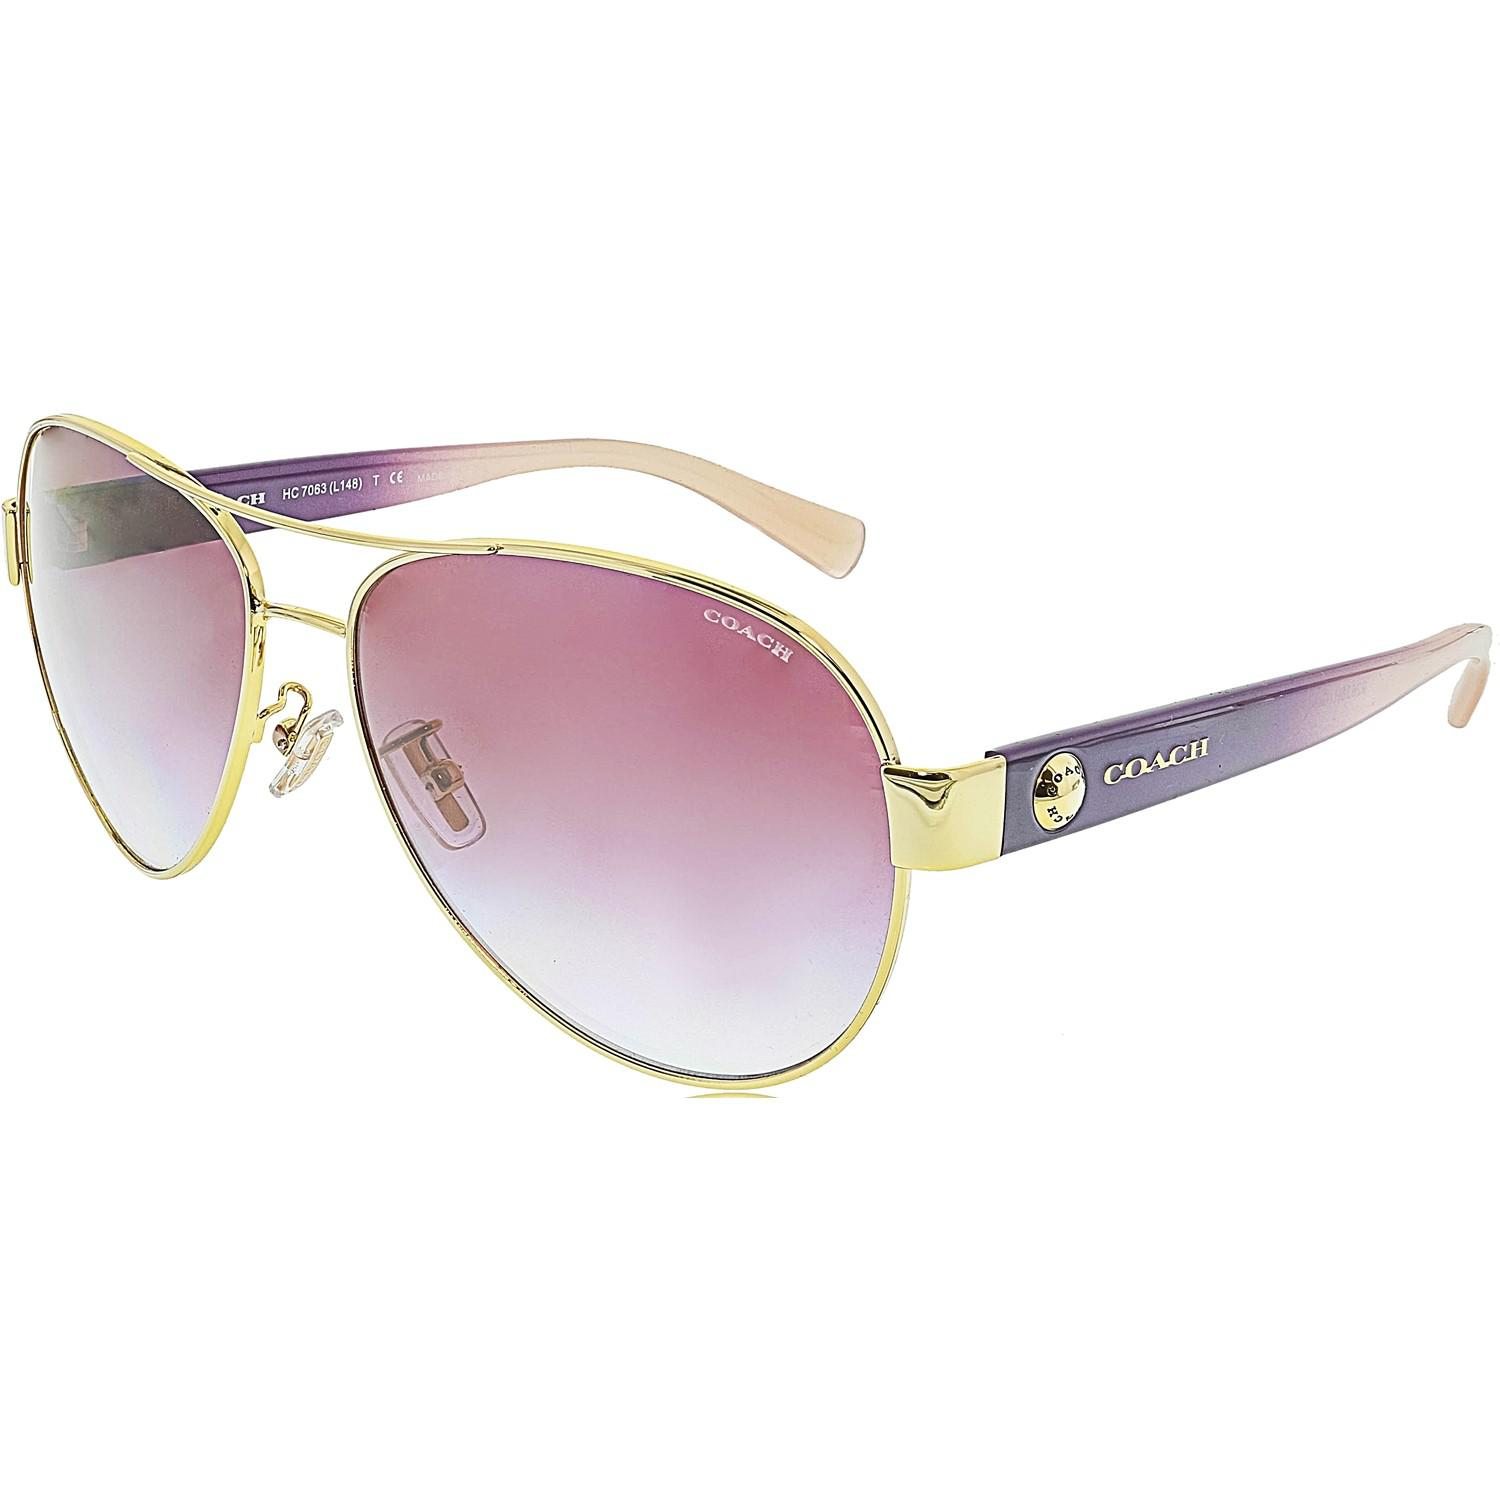 873328d642 official store lyst coach gradient hc7063 92638h 58 gold aviator sunglasses  in faea0 36315